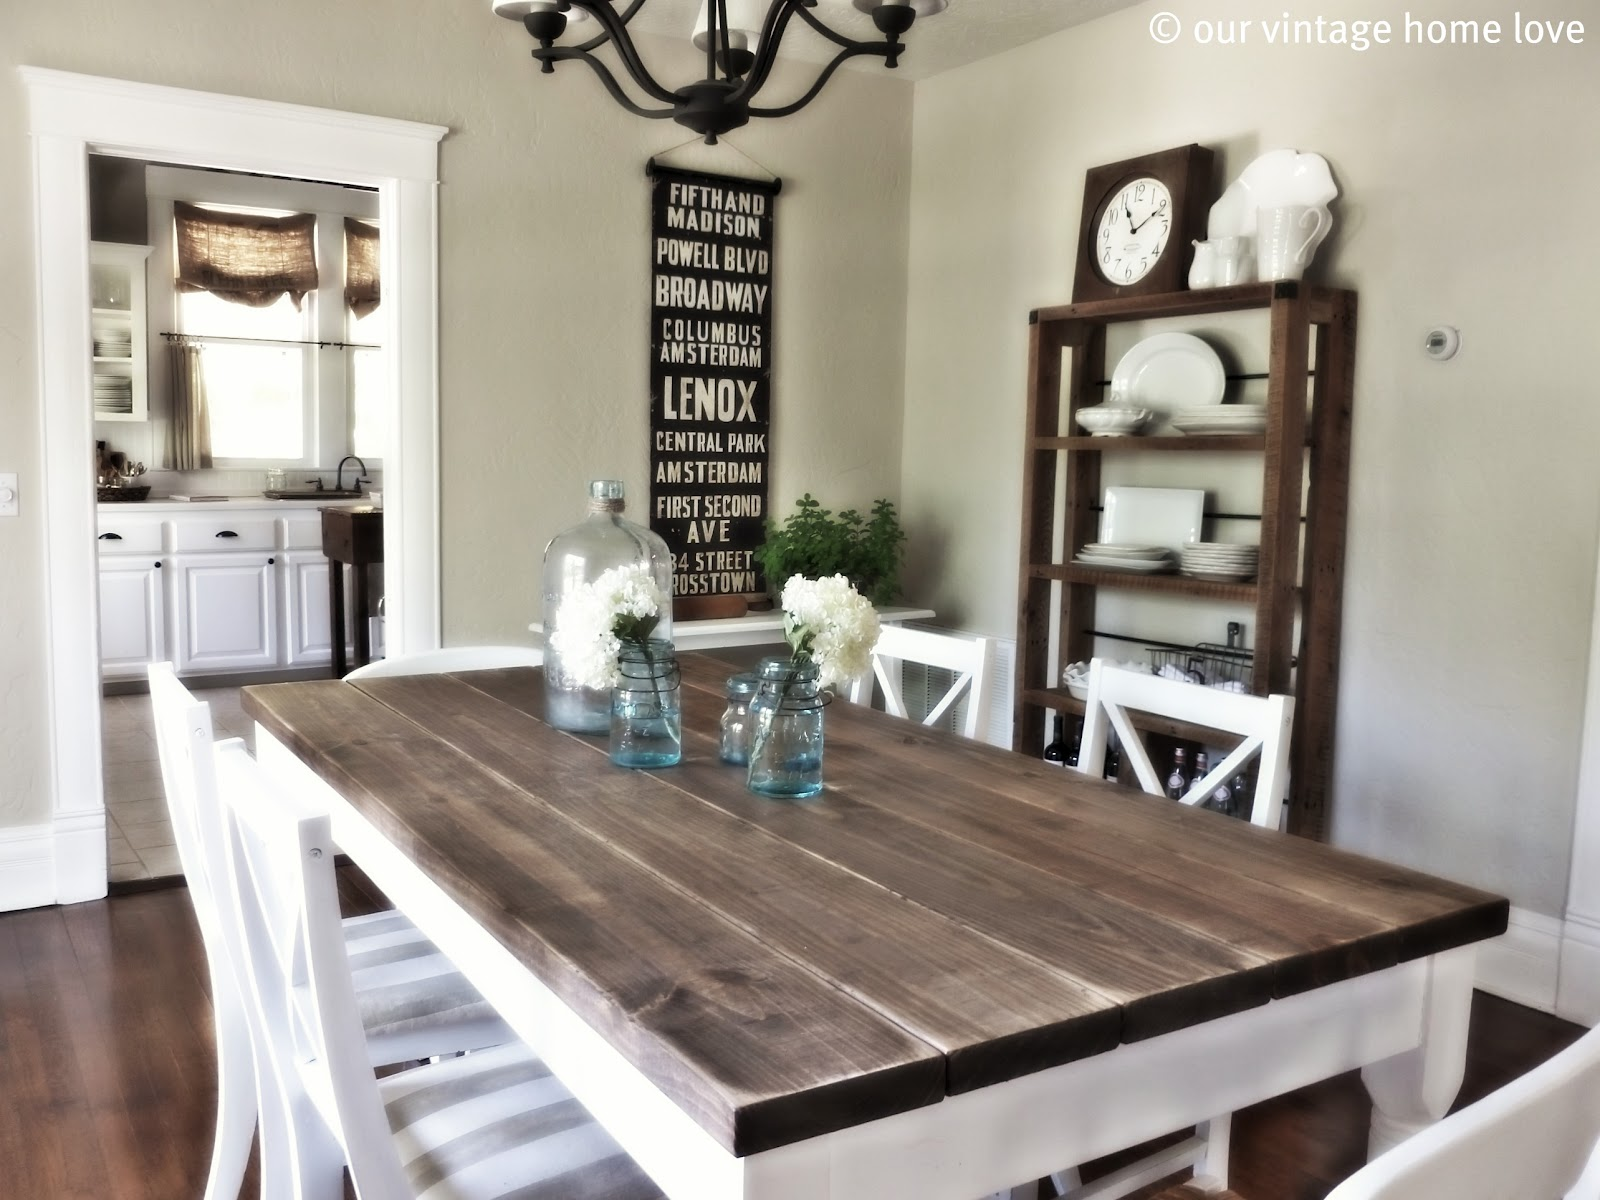 Wooden Dining Room Sets Target With White And Brown Theme